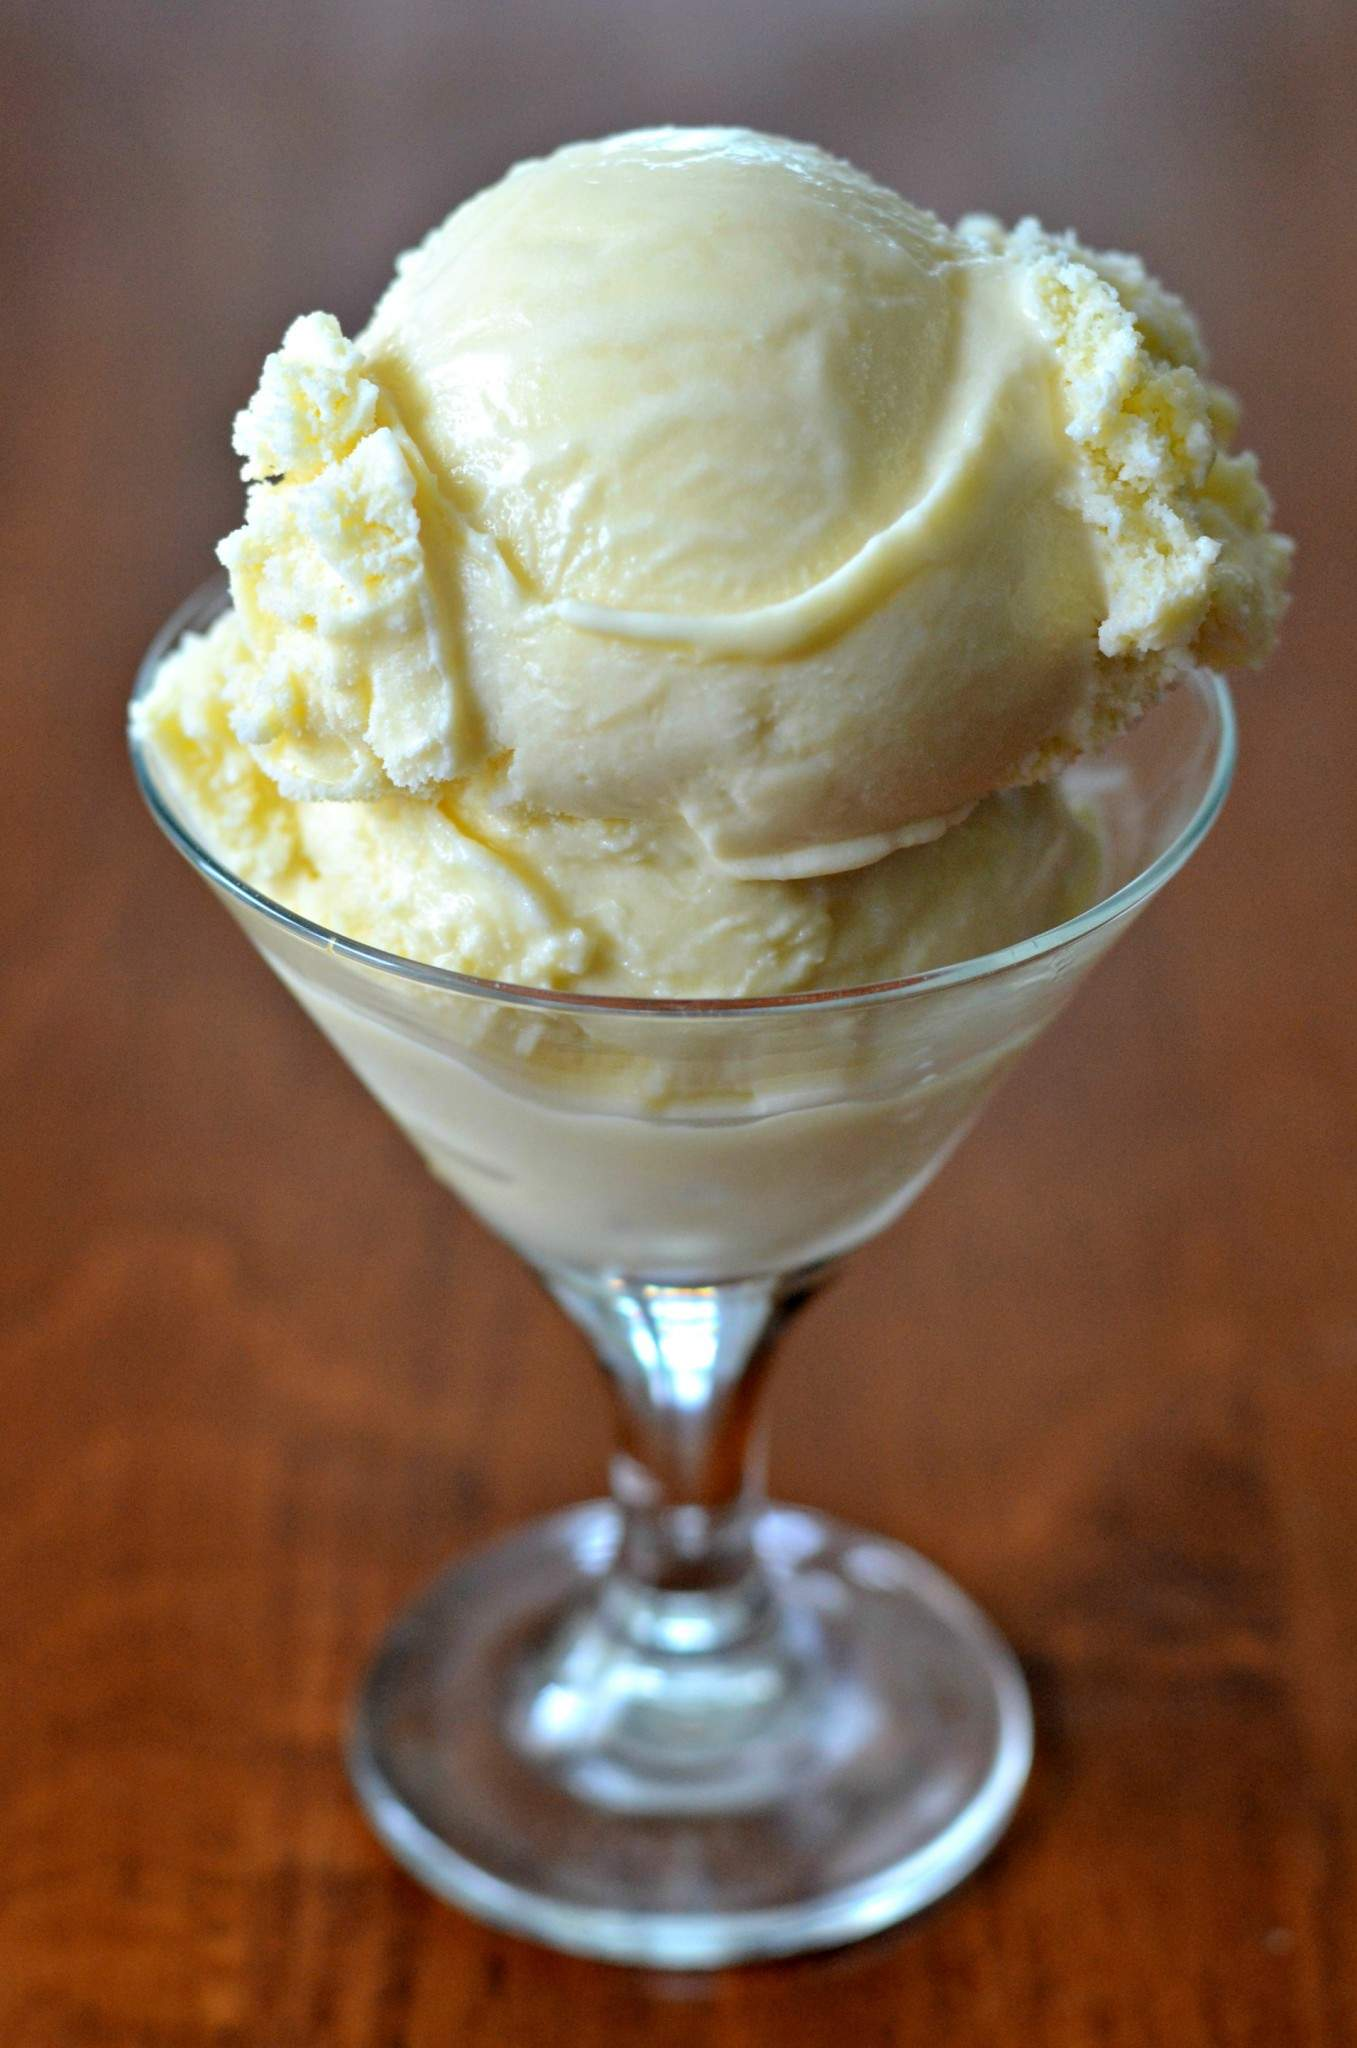 Cup of homemade vanilla ice cream made with simple ingredients